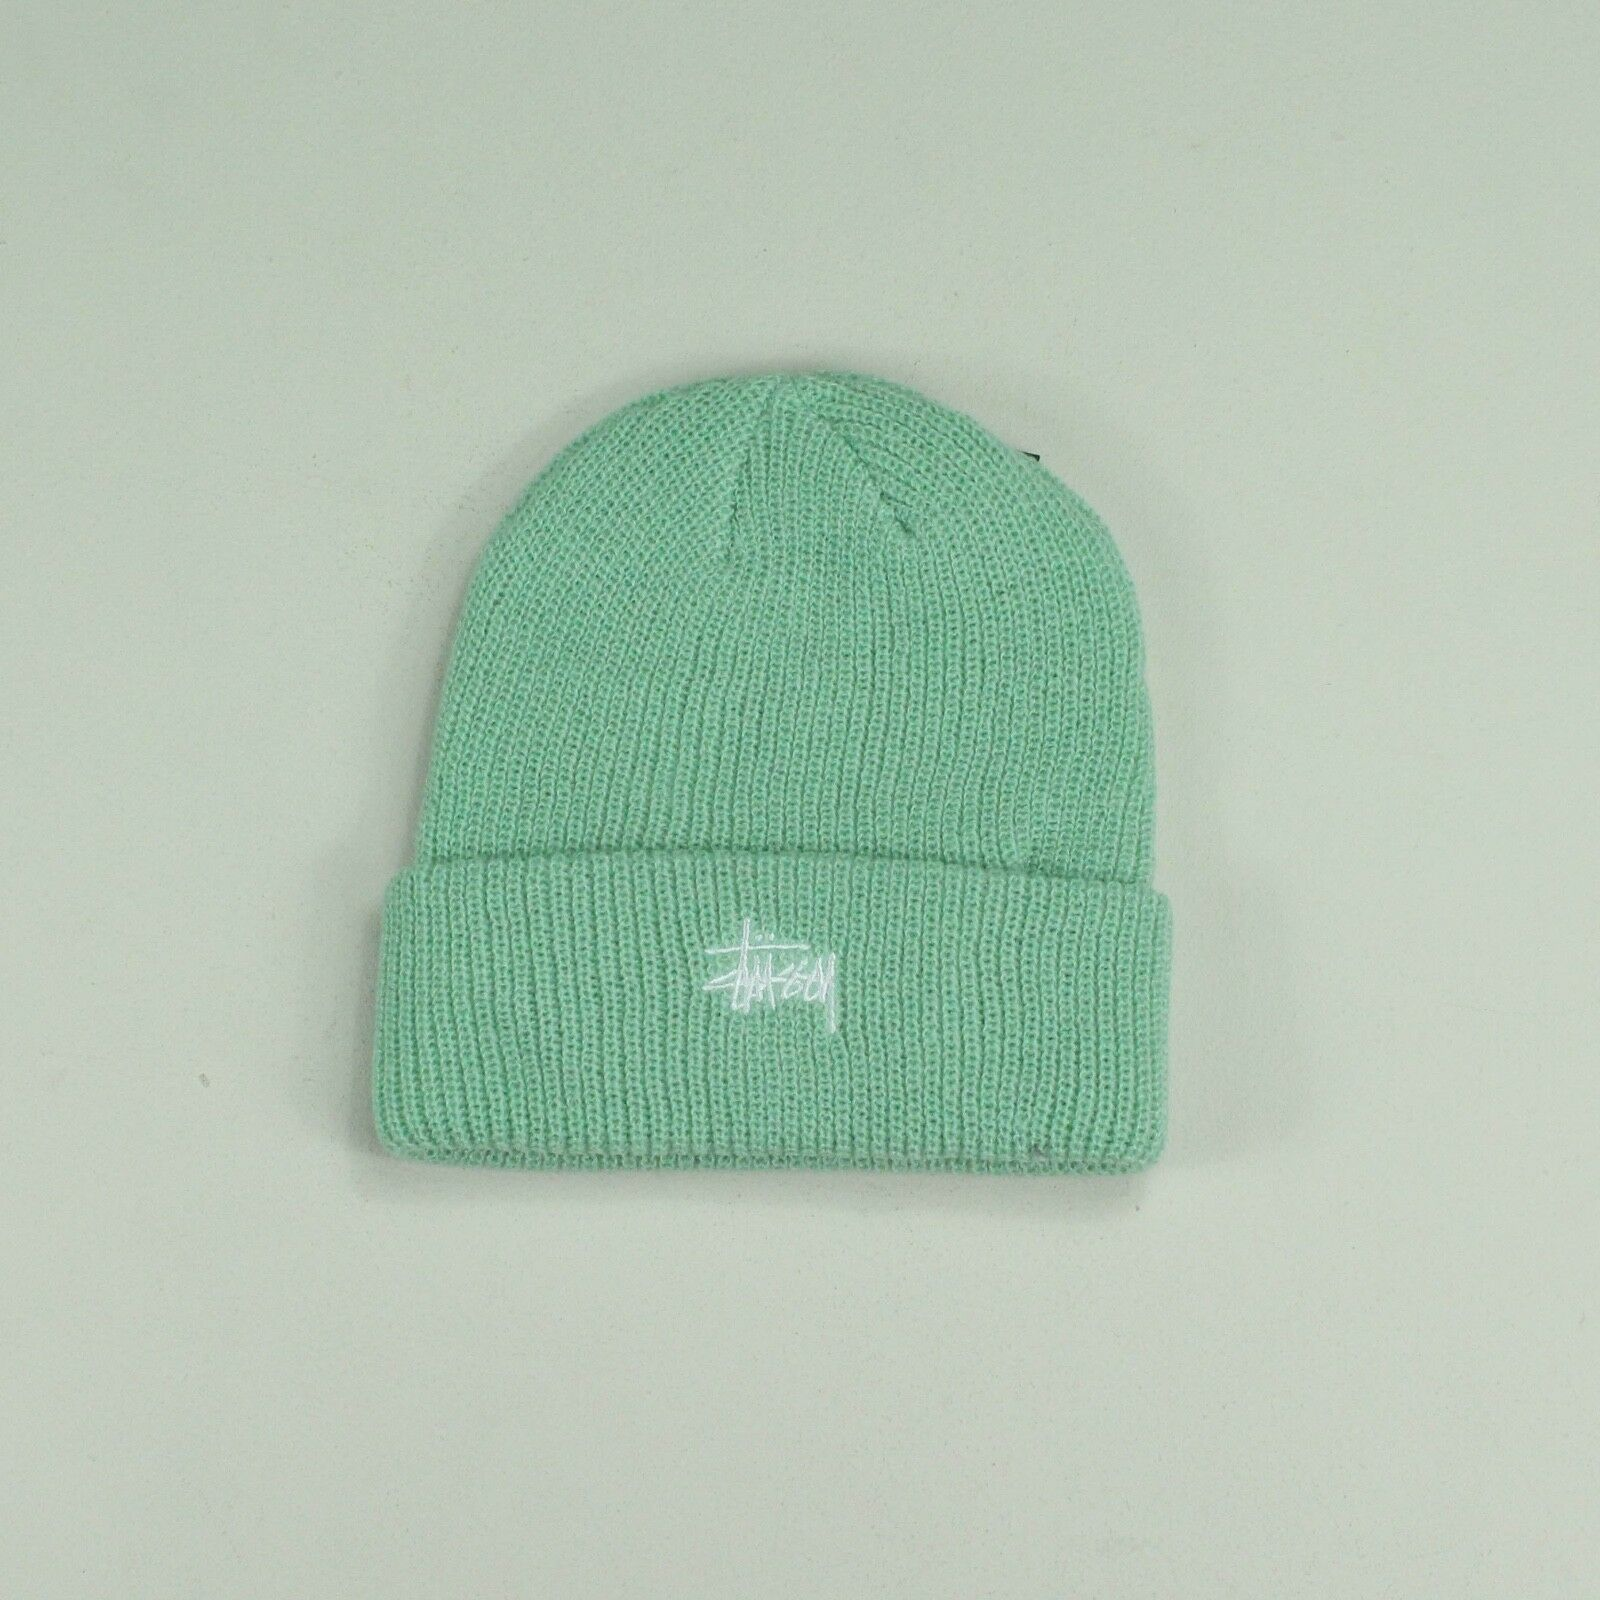 Details about Stussy Basic Embroidered Cuff Beanie Hat – Mint Green - One  size fits all b04b5fd3dbb